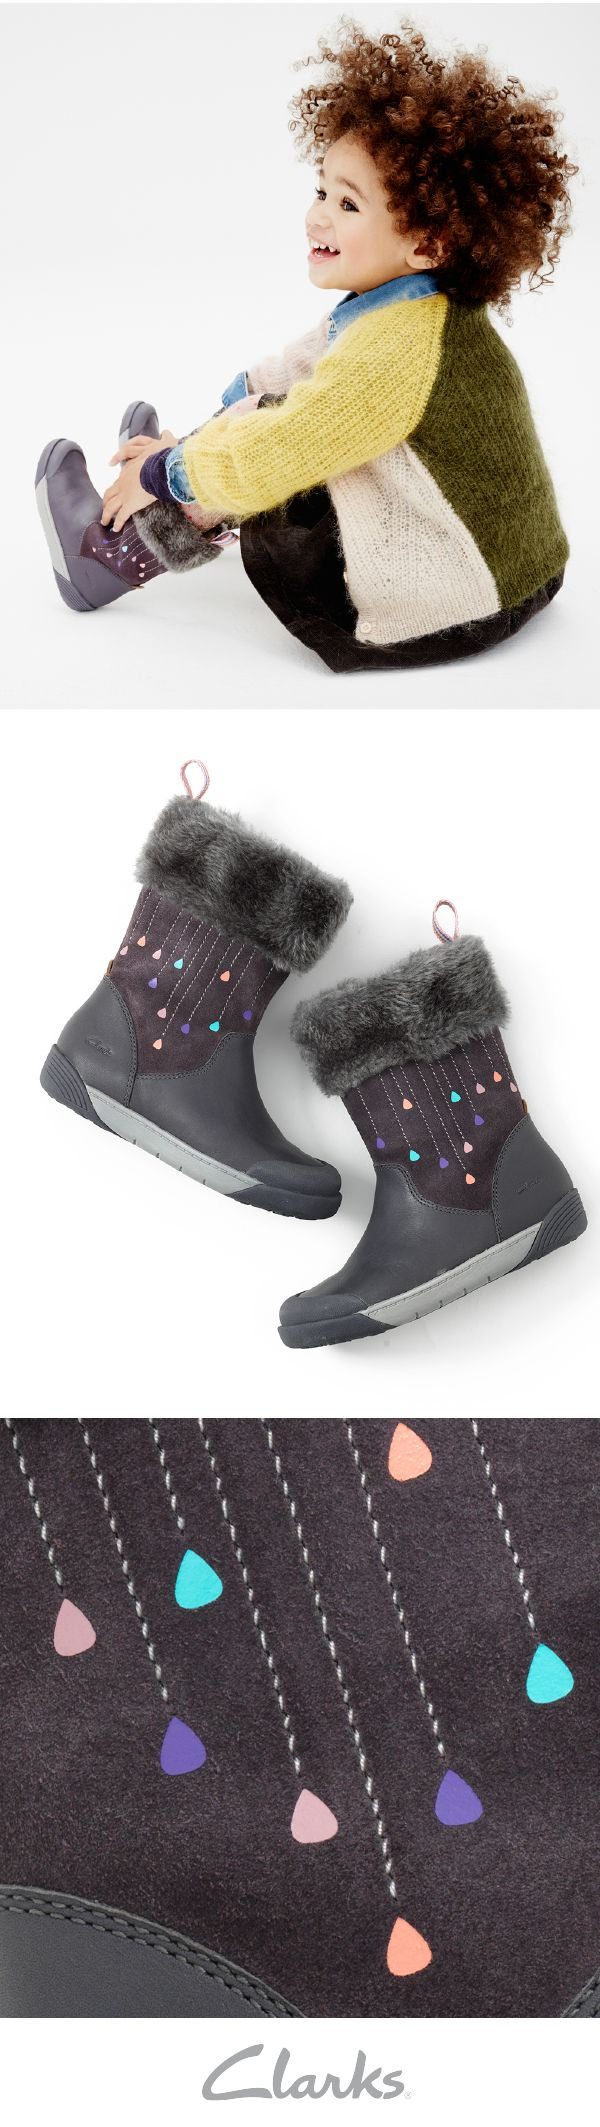 Winter is coming, which means it is time to warm up your little one's feet with Clarks Lil Folk Rae Toddler Boots. With a faux fur collar trim and rubber EVA sole unit that has been fused with our unique Air Spring technology, the boots are comfortable, durable and good for any winter weather that comes your way.